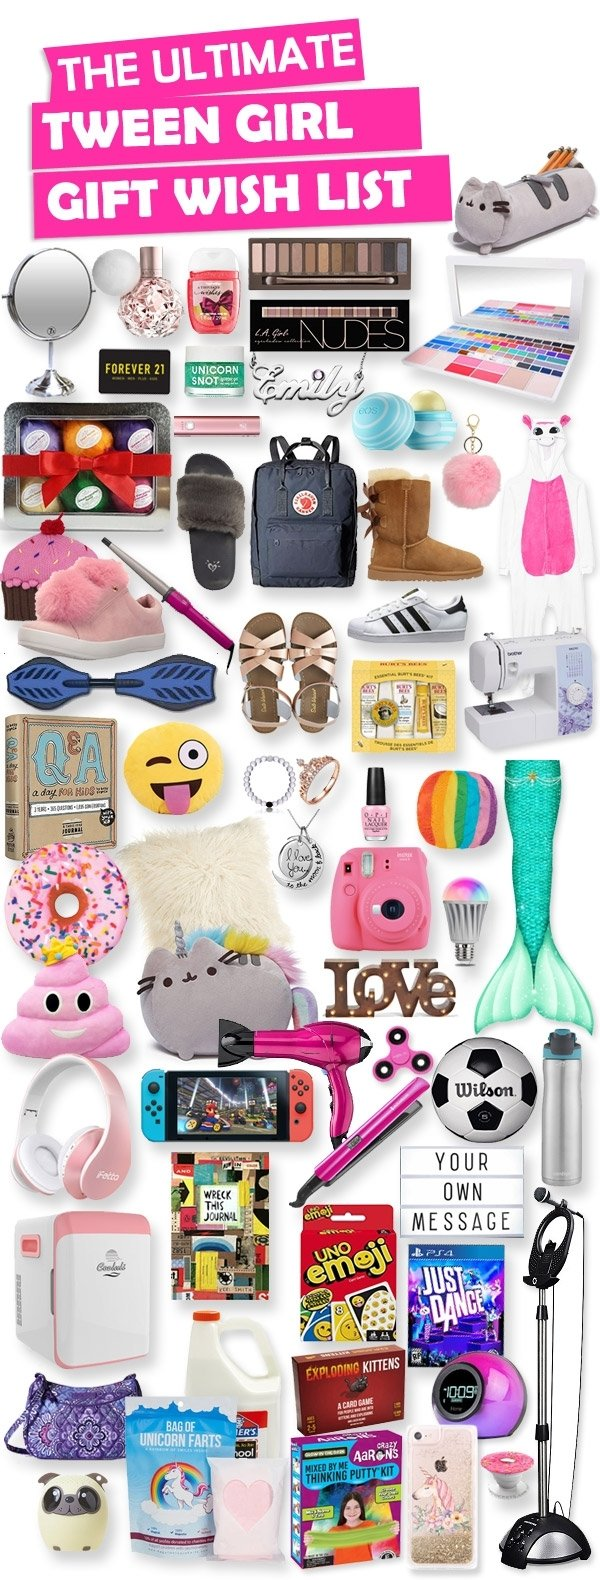 10 Trendy Christmas Gift Ideas For Tween Girls gifts for tween girls toy buzz 2020